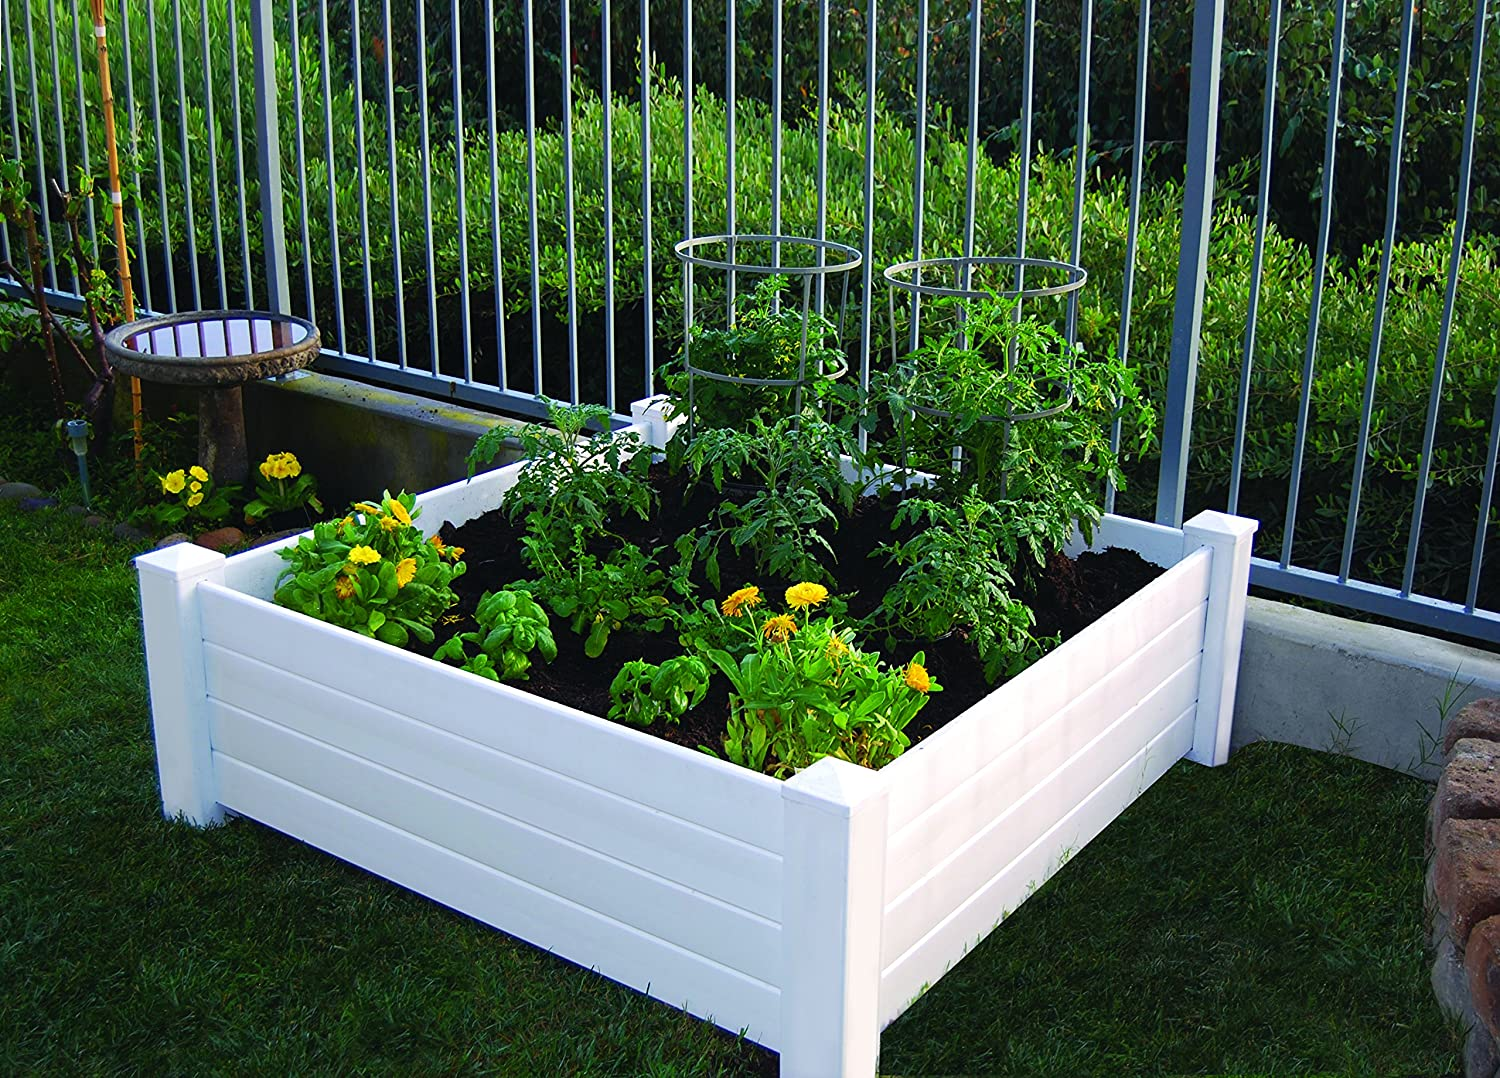 pictures raised beds garden hardscaping bed hgtv and design landscaping outdoor designs